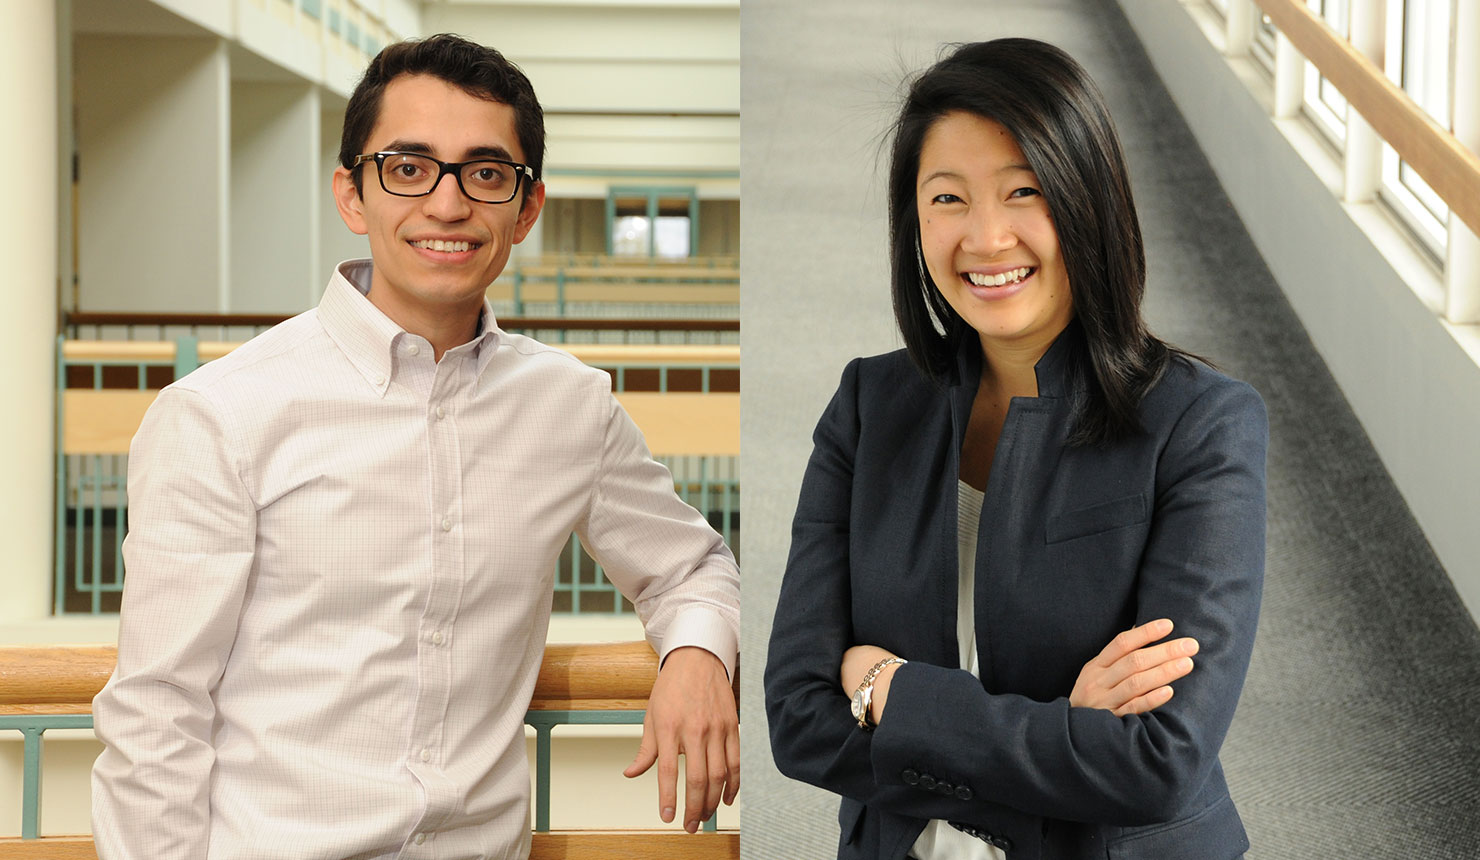 Freddy Vazquez and Lye-Yeng Wong have received fellowships from the Doris Duke Charitable Foundation and the National Institutes of Health. (photos by Jon Gilbert Fox)